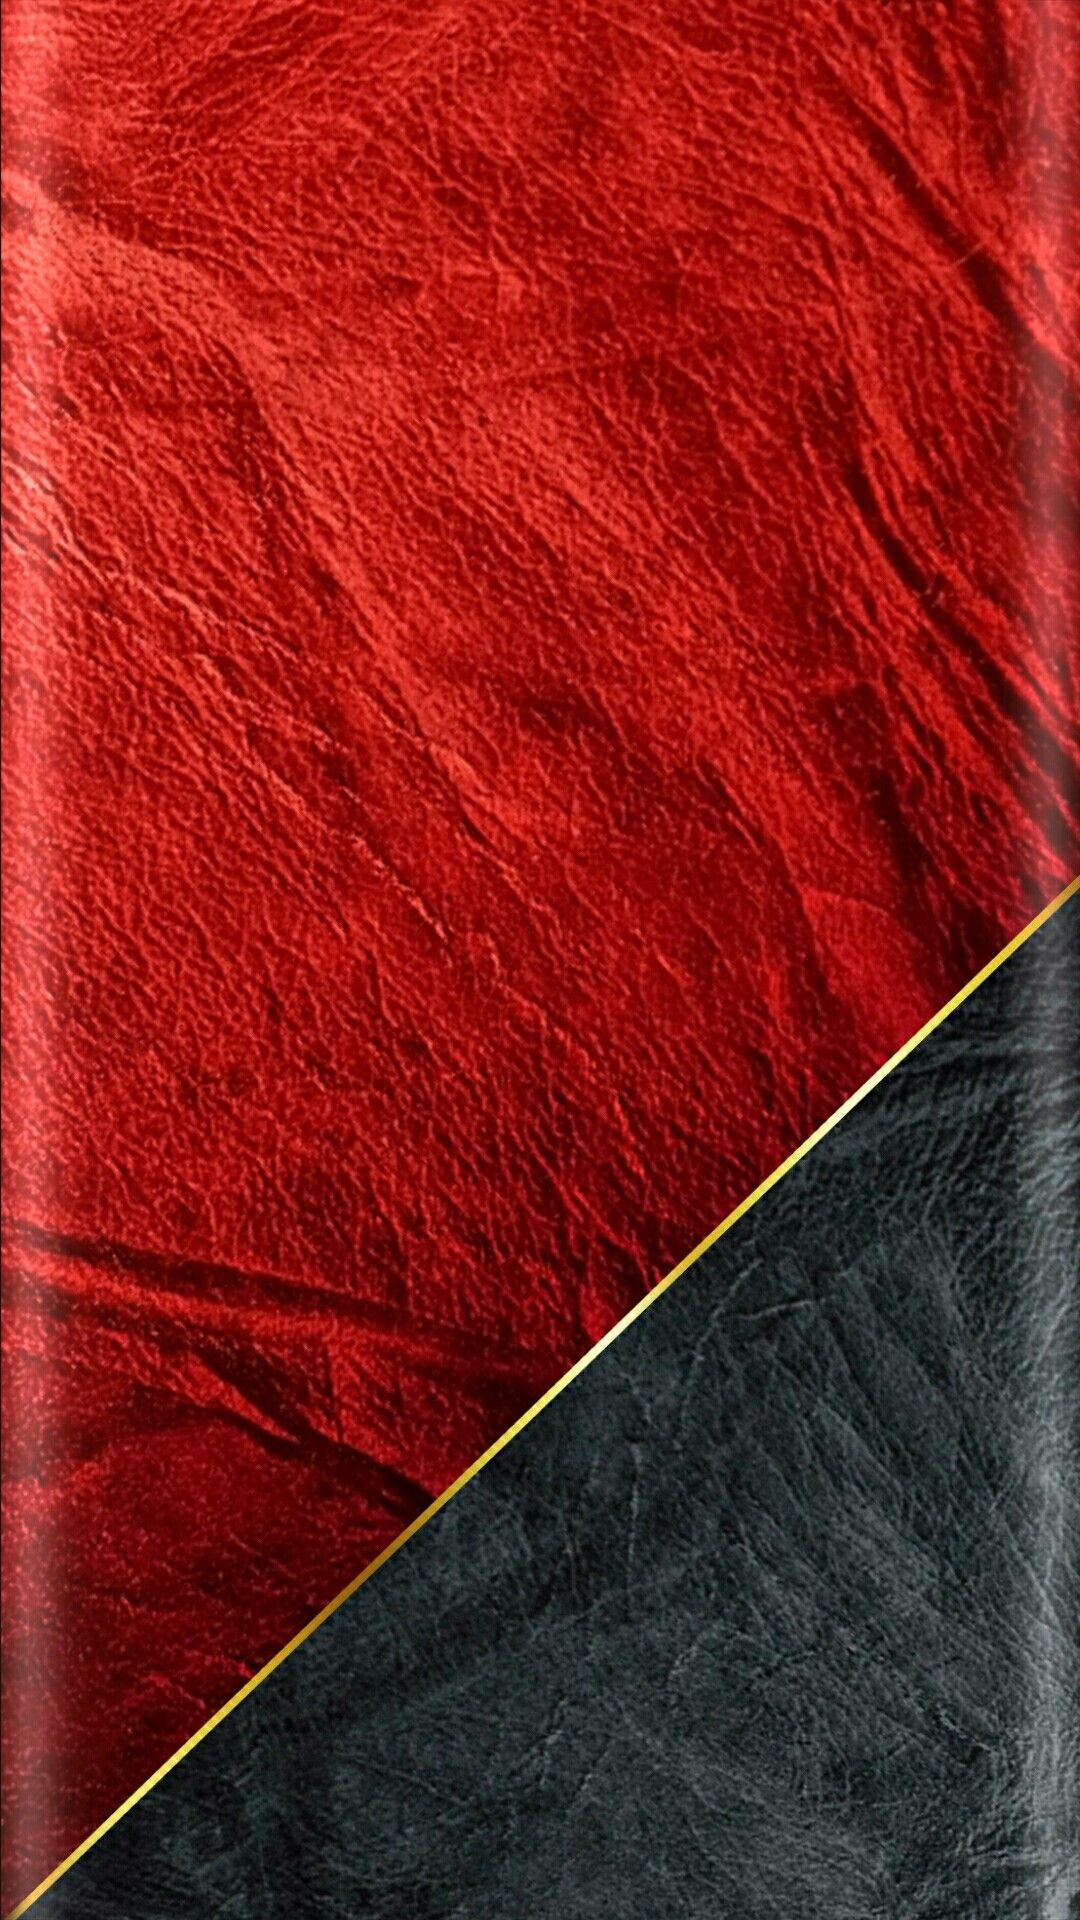 Amazing Wallpaper Home Screen Red - 21afc50c84d985b622aa02ca982c8801  Graphic_323337.jpg